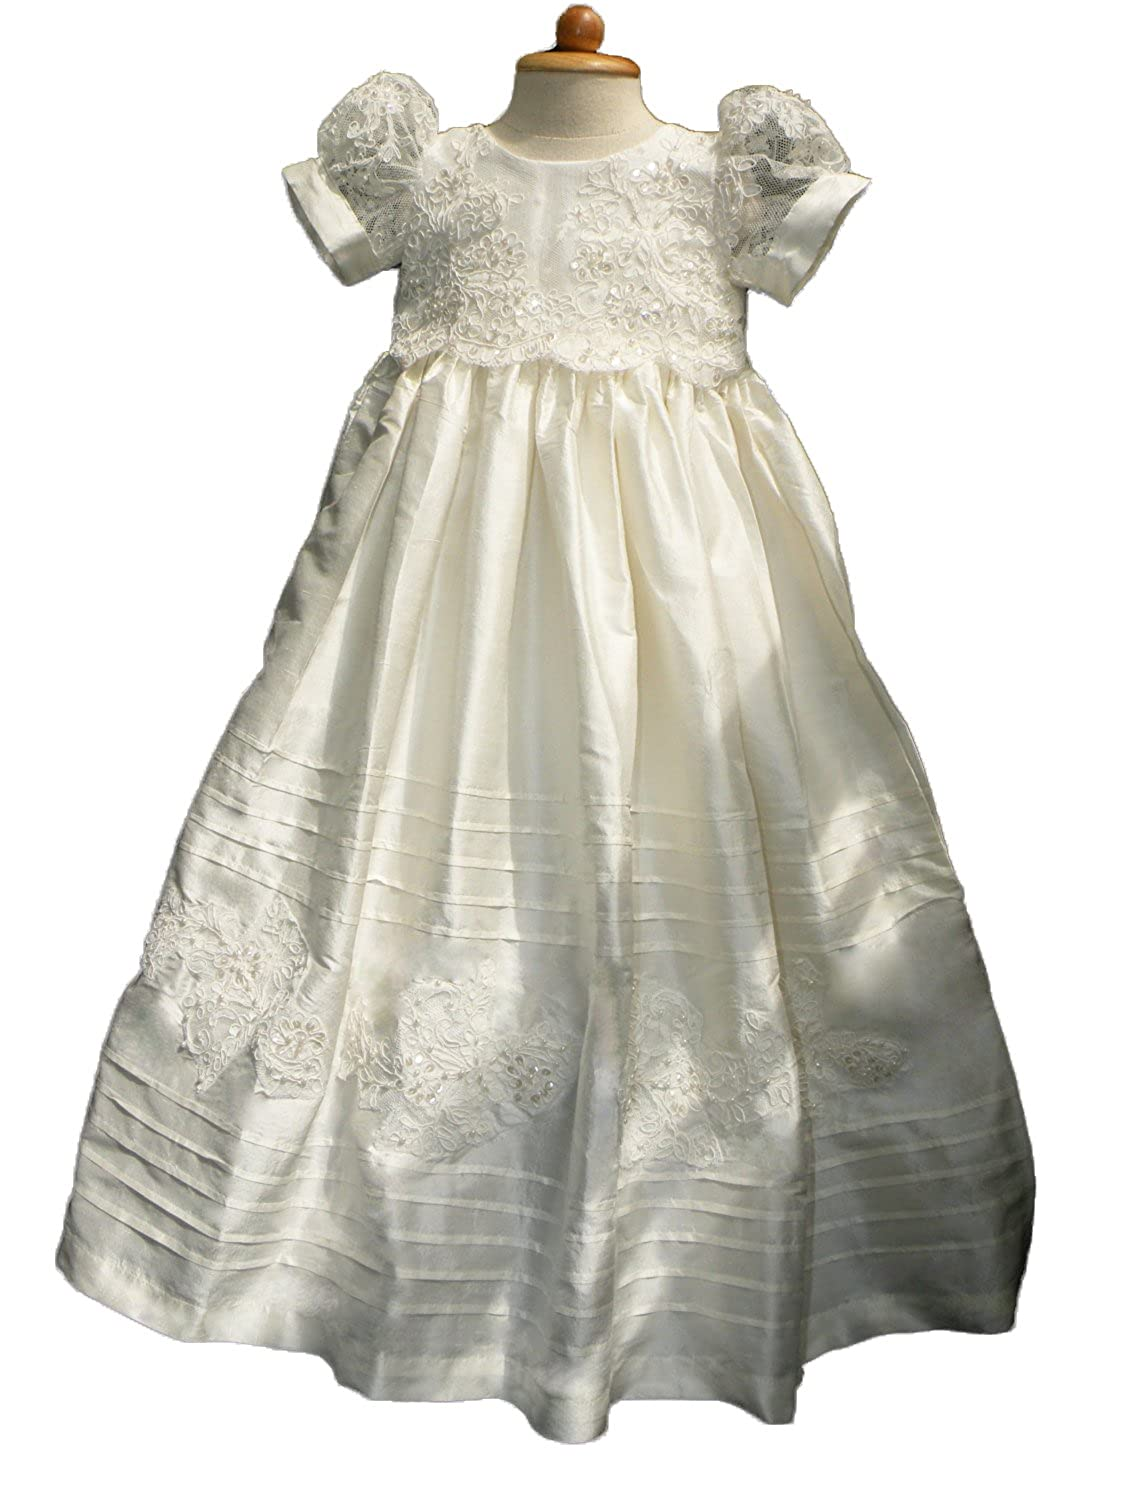 Fenghuavip Long Christening gowns for Baby Girls with pearls